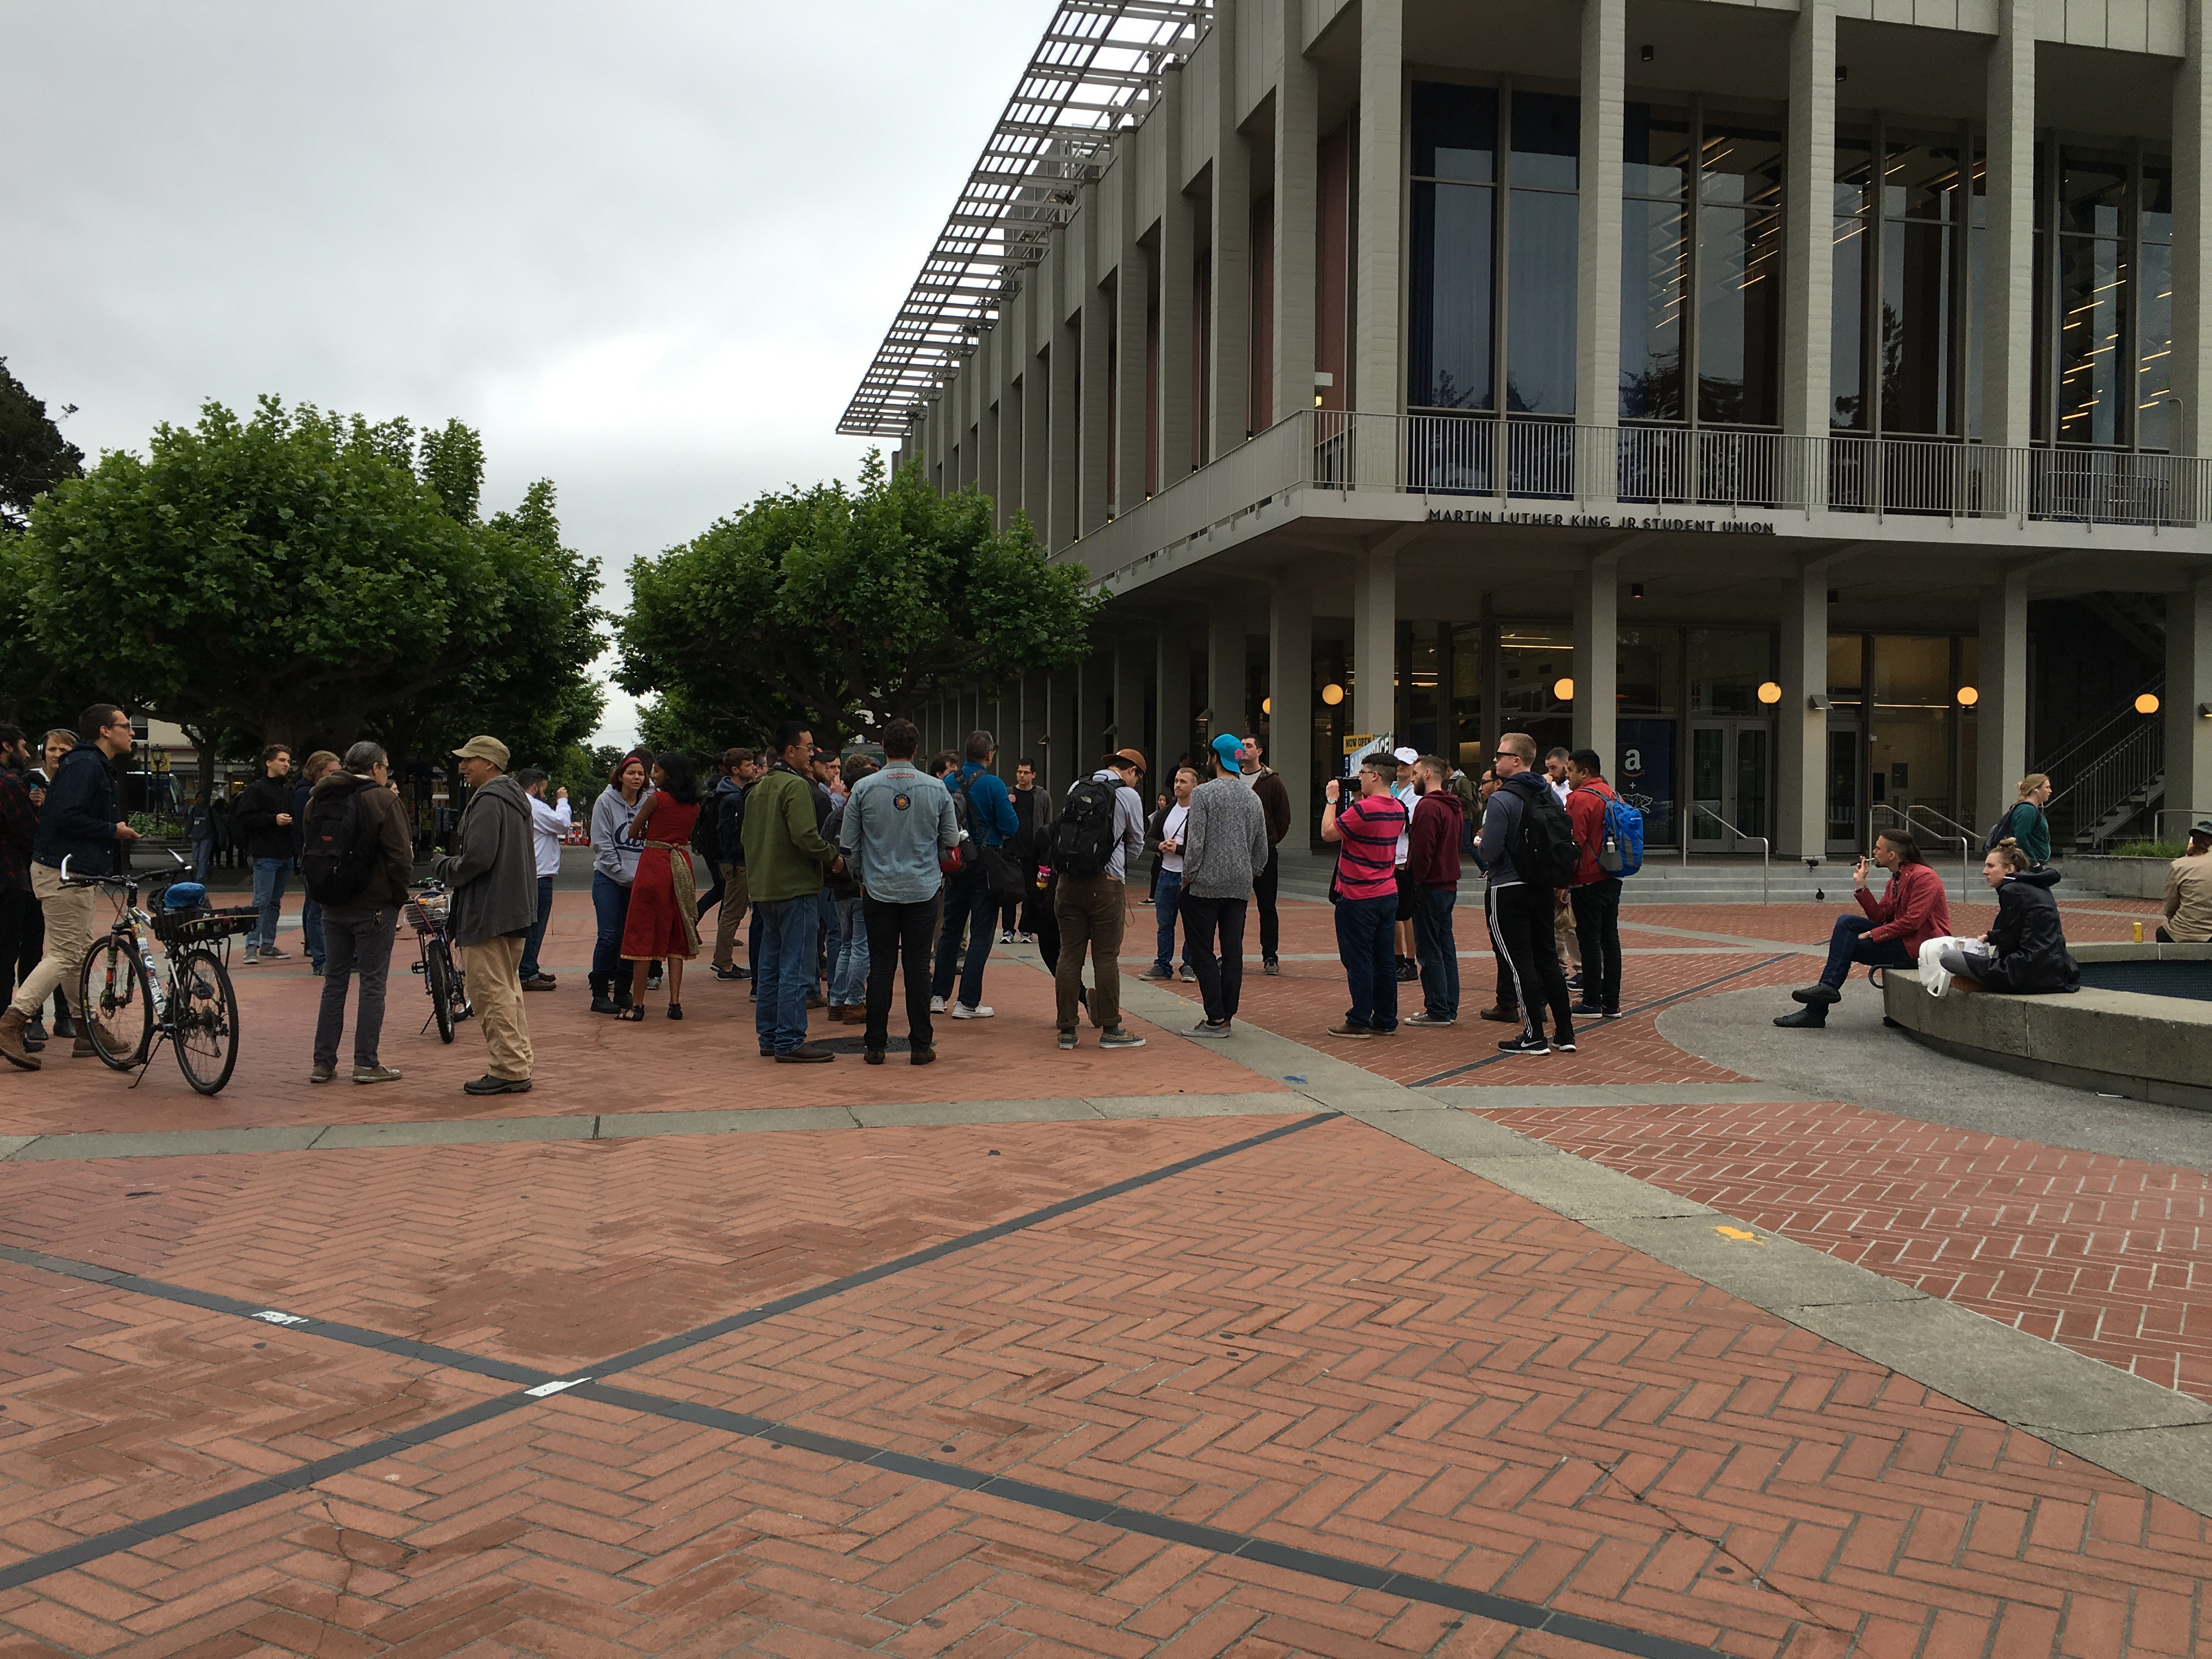 The gathering of supporters in on Sproul